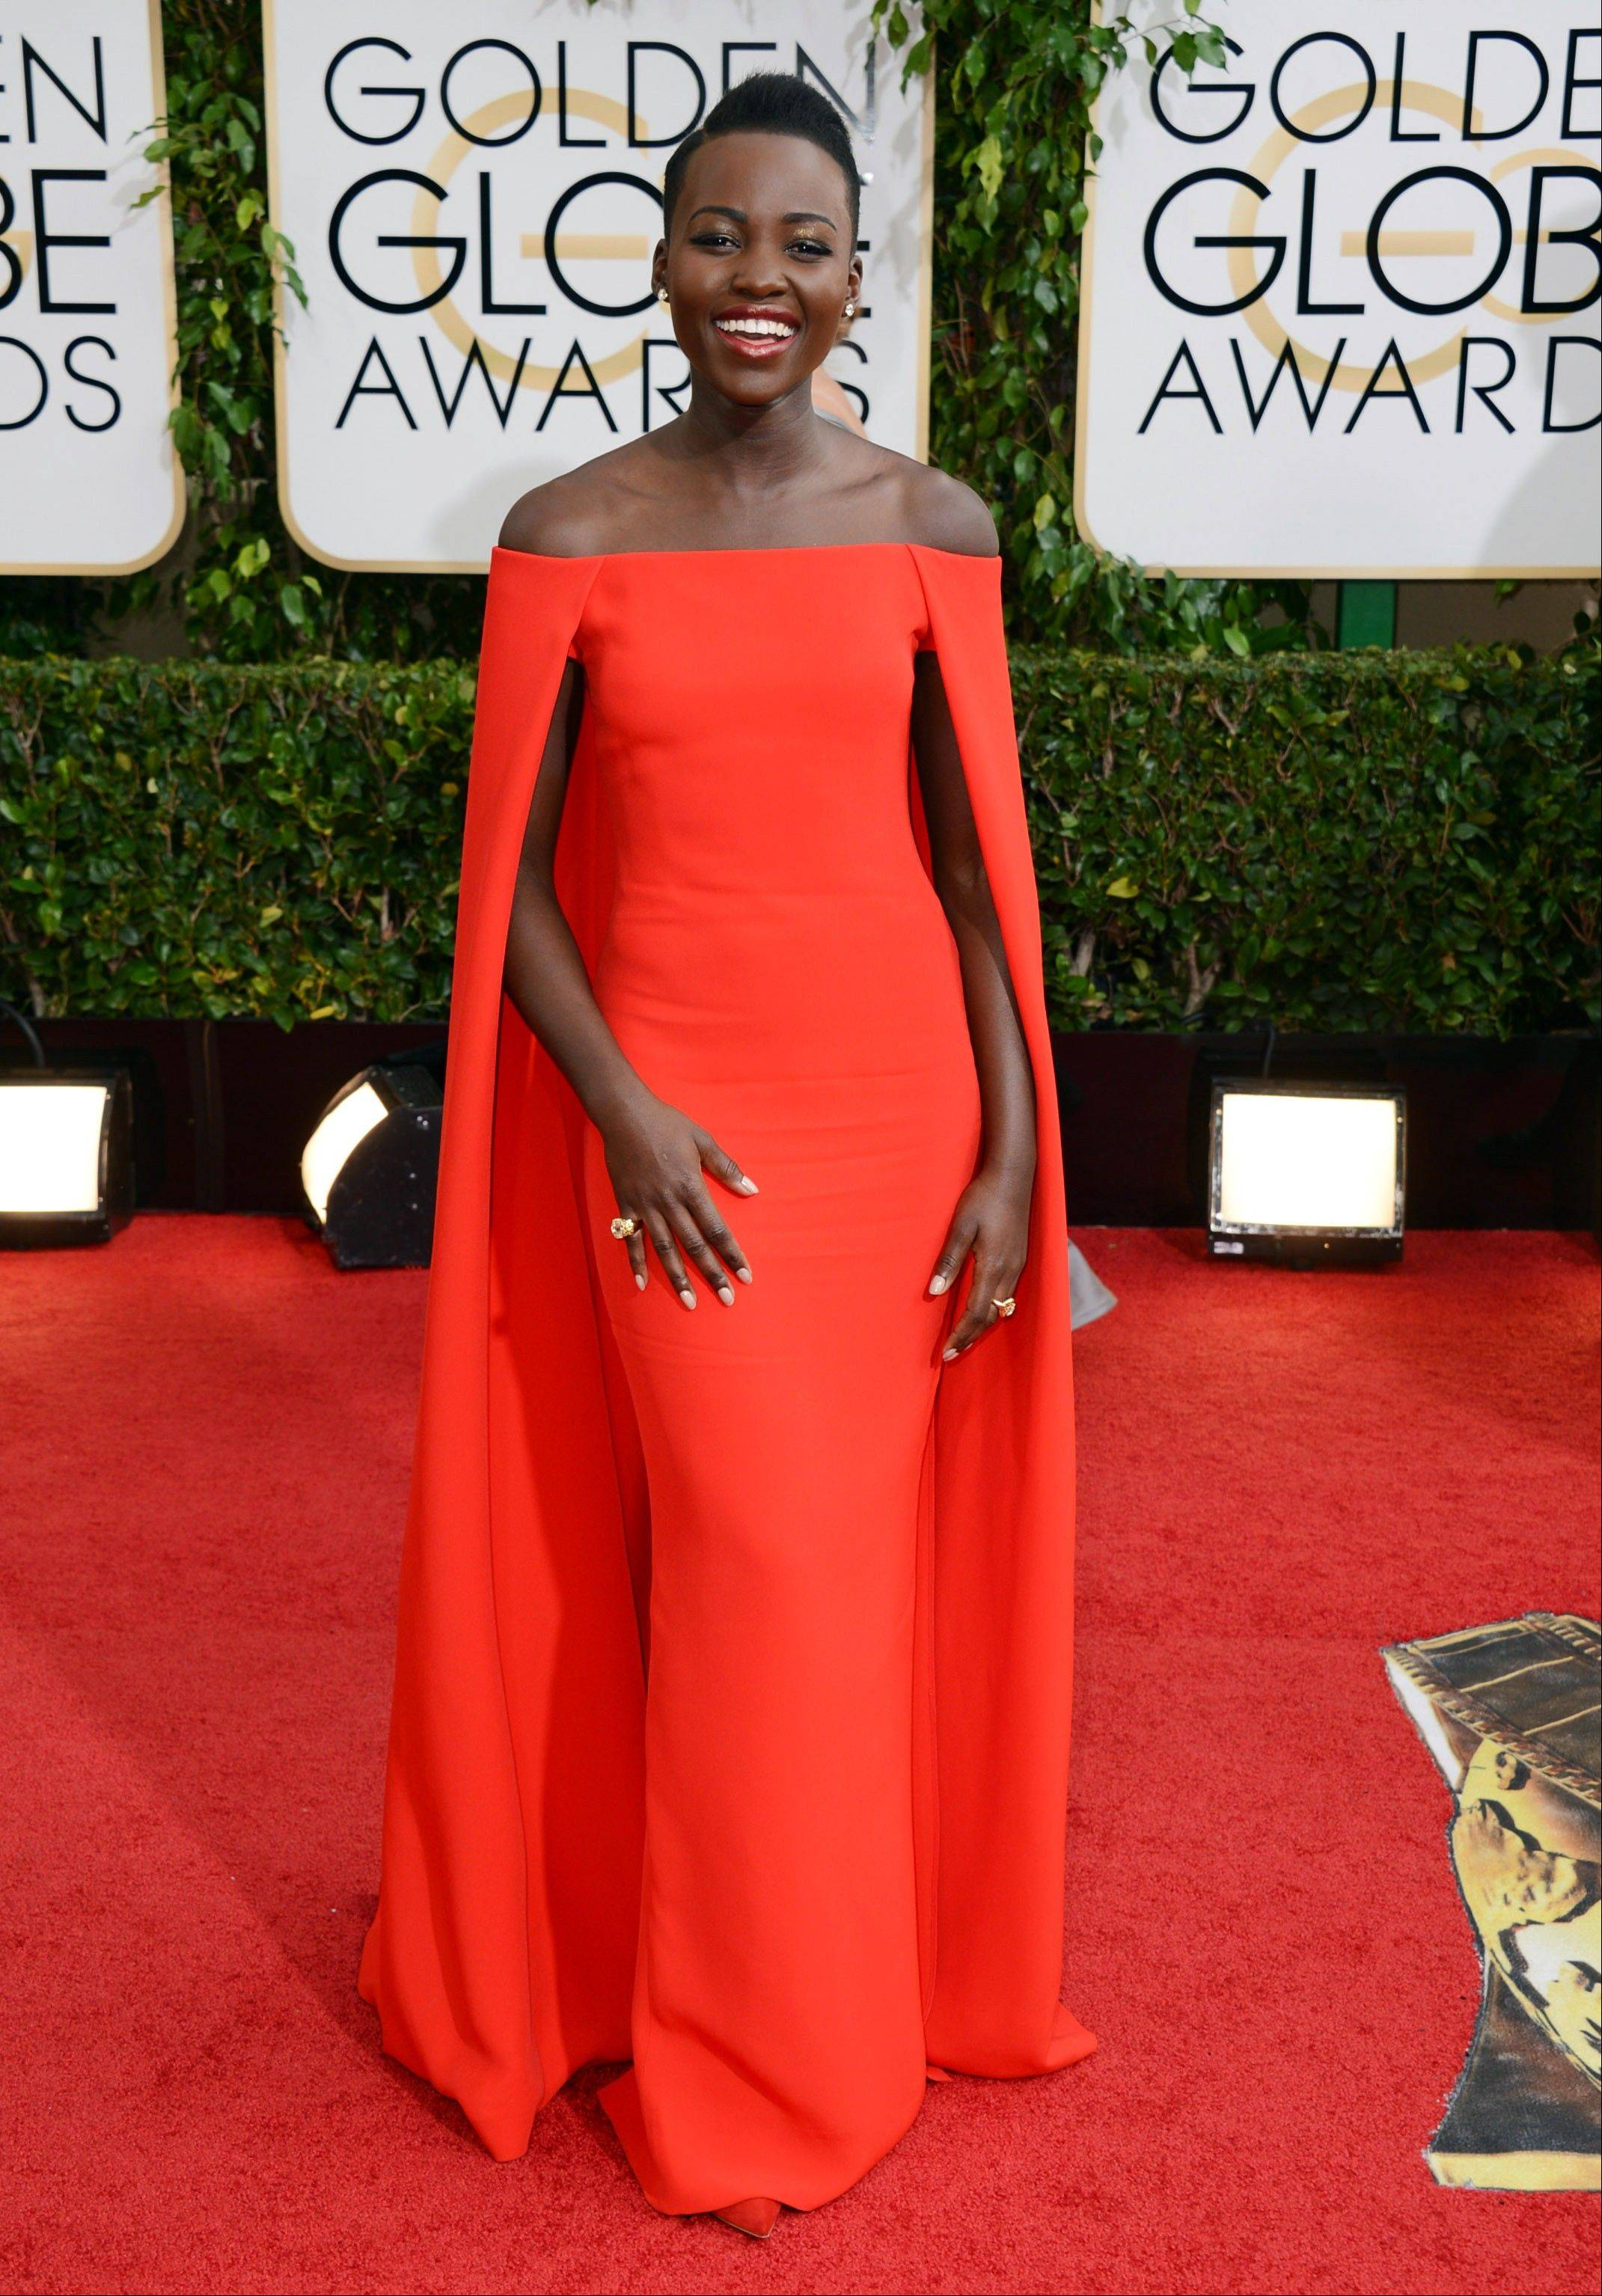 Newcomer Lupita Nyong�o stunned in an orange-red silk column gown with a cape from the Ralph Lauren Collection at the Golden Globes.